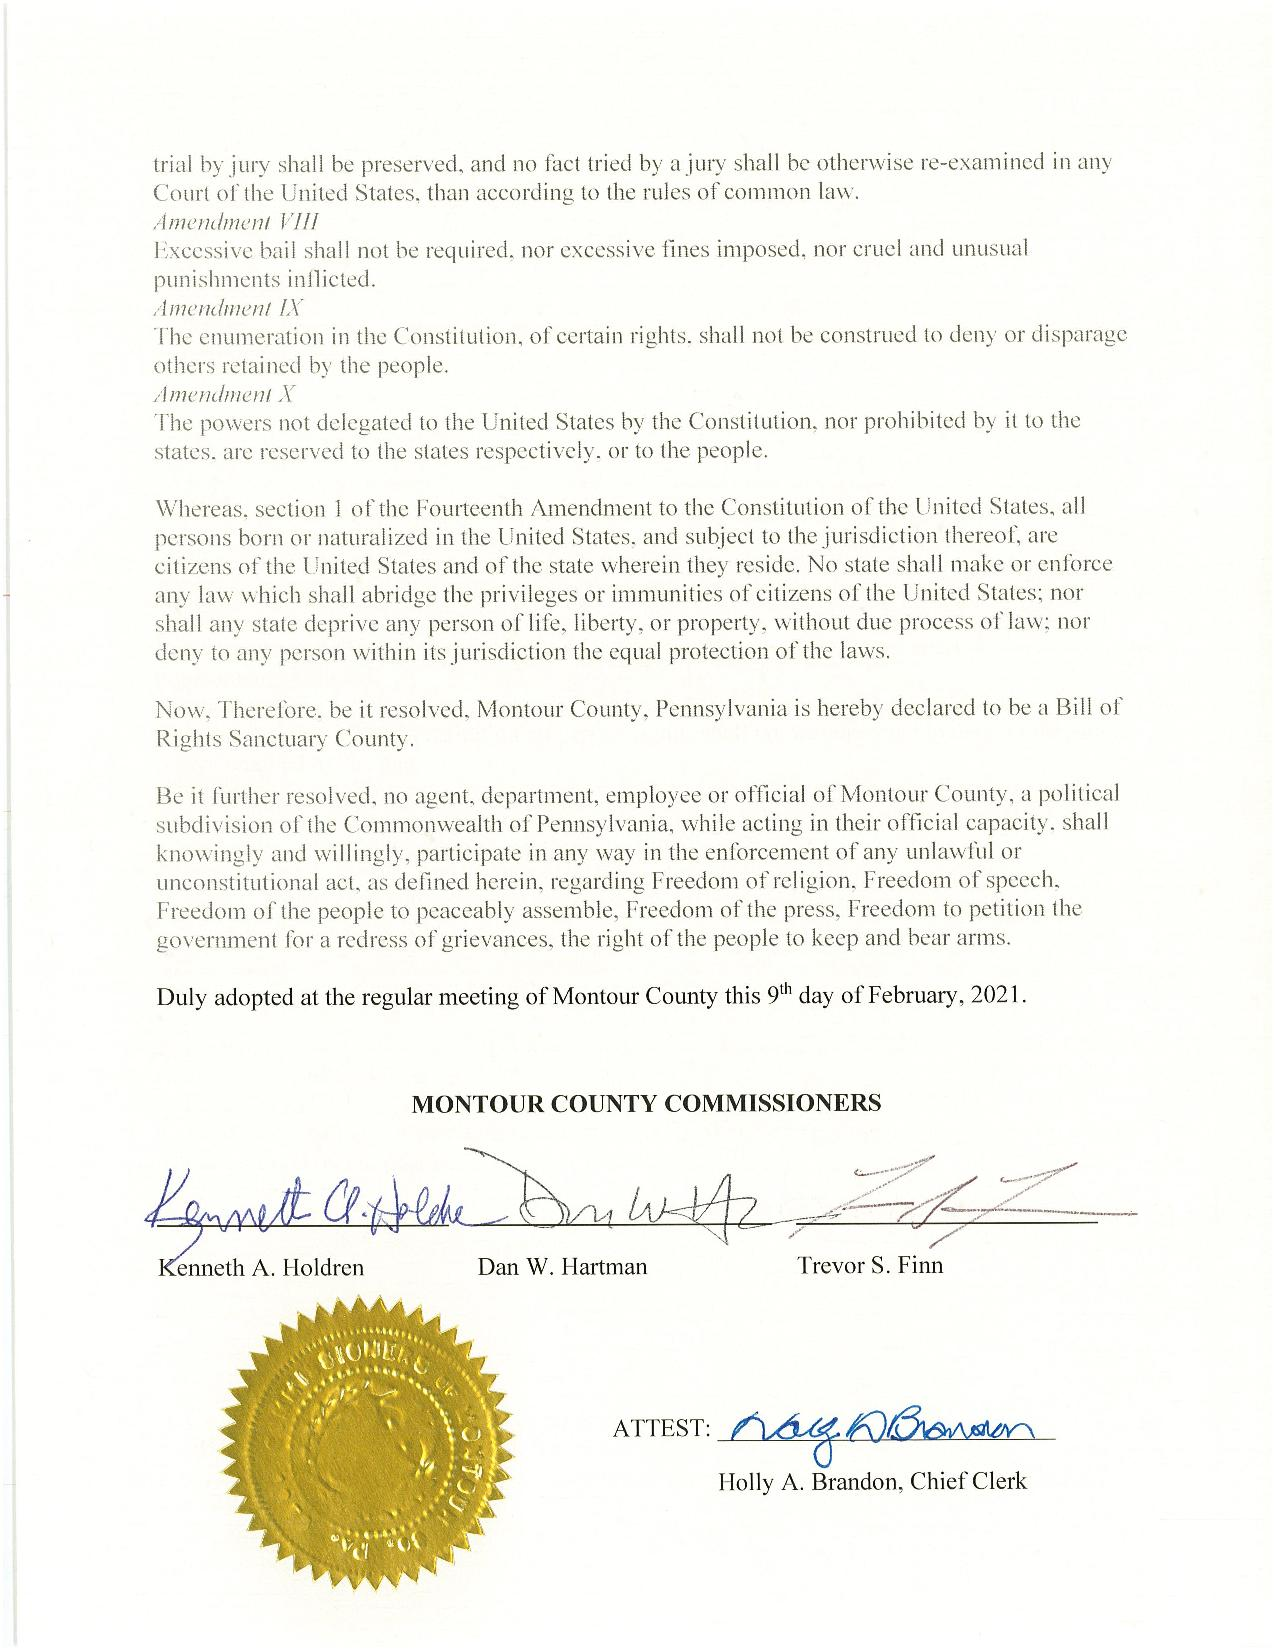 Montour County Bill of Rights Sanctuary Signed Resolution R-2-9-2021 page 2